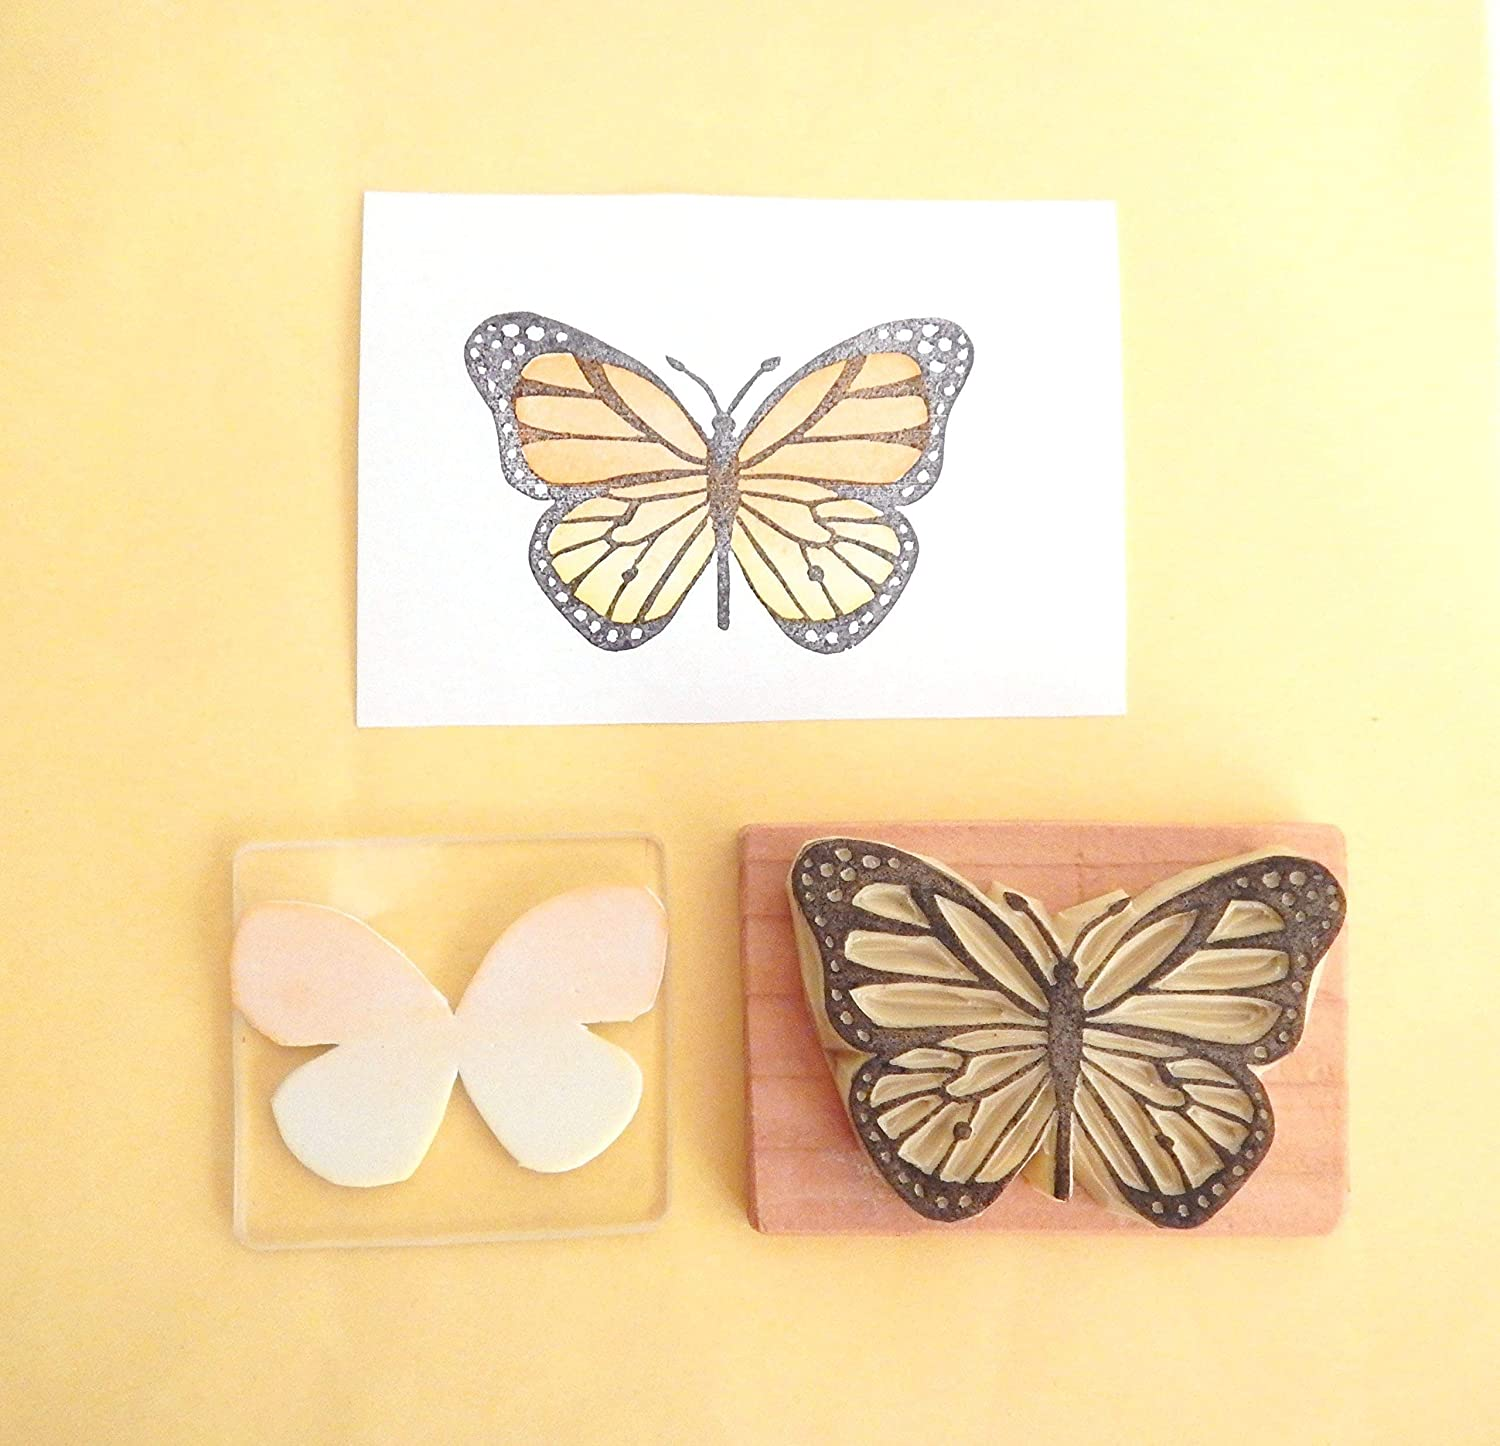 Butterfly 3 - Hand carved rubber stamp set